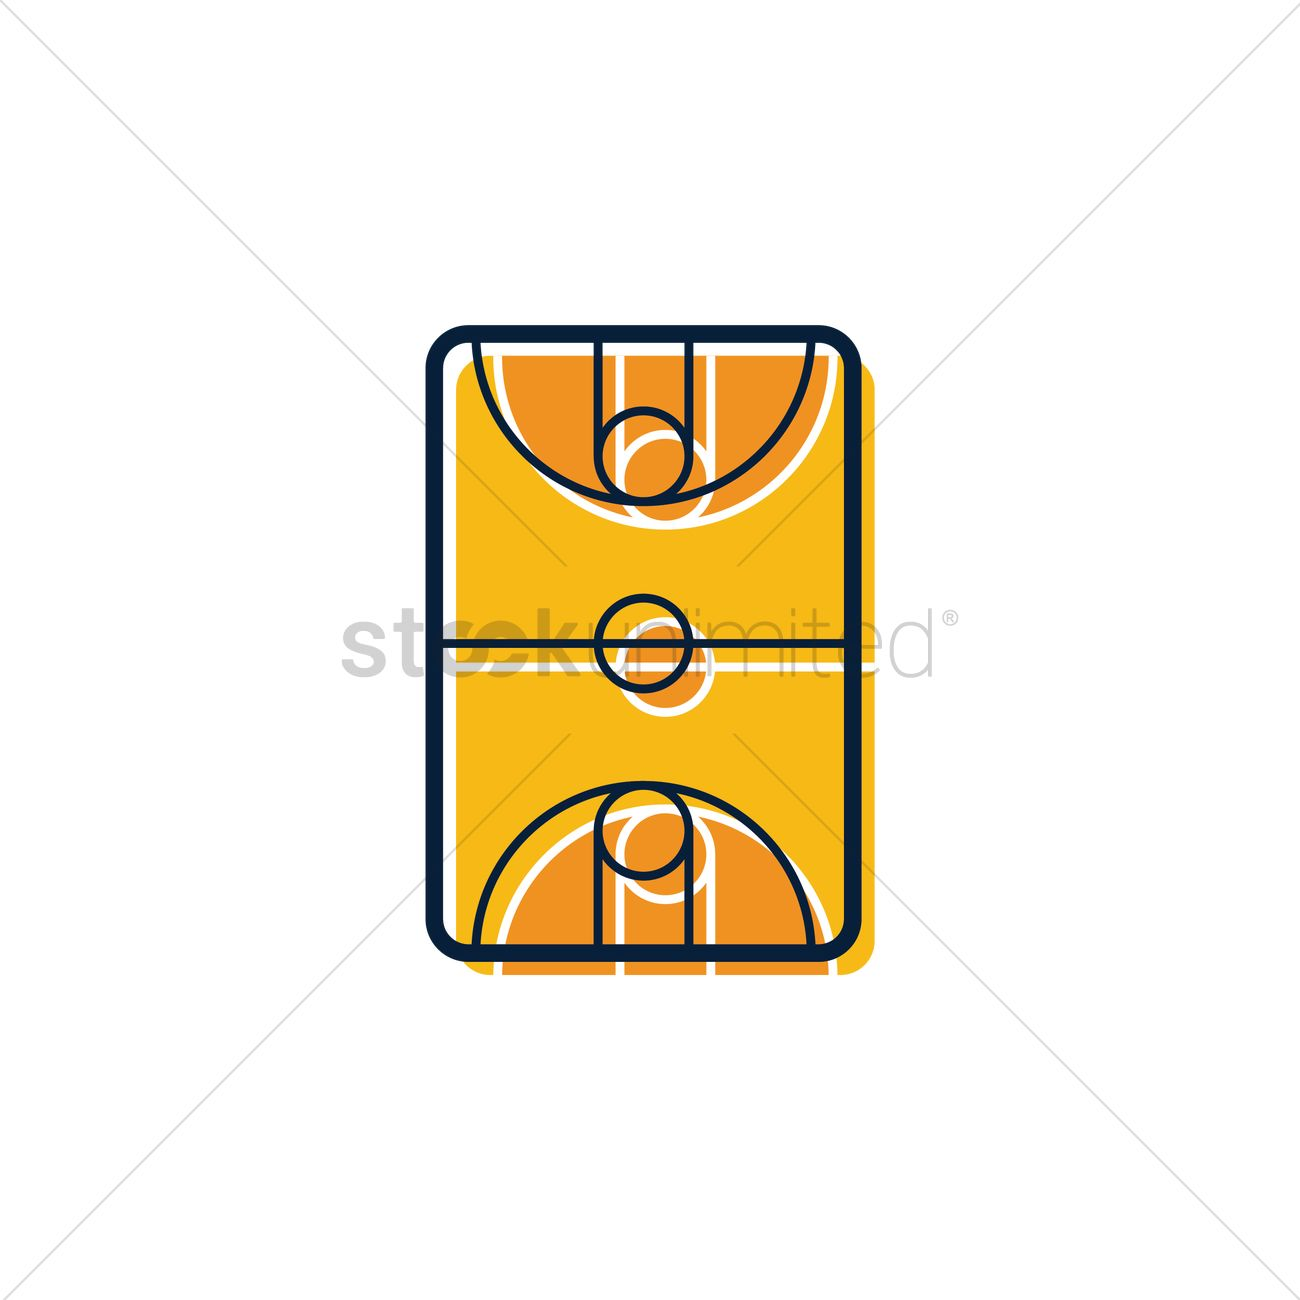 basketball court vector image 1988202 stockunlimited rh stockunlimited com basketball court vector logo basketball court vector image